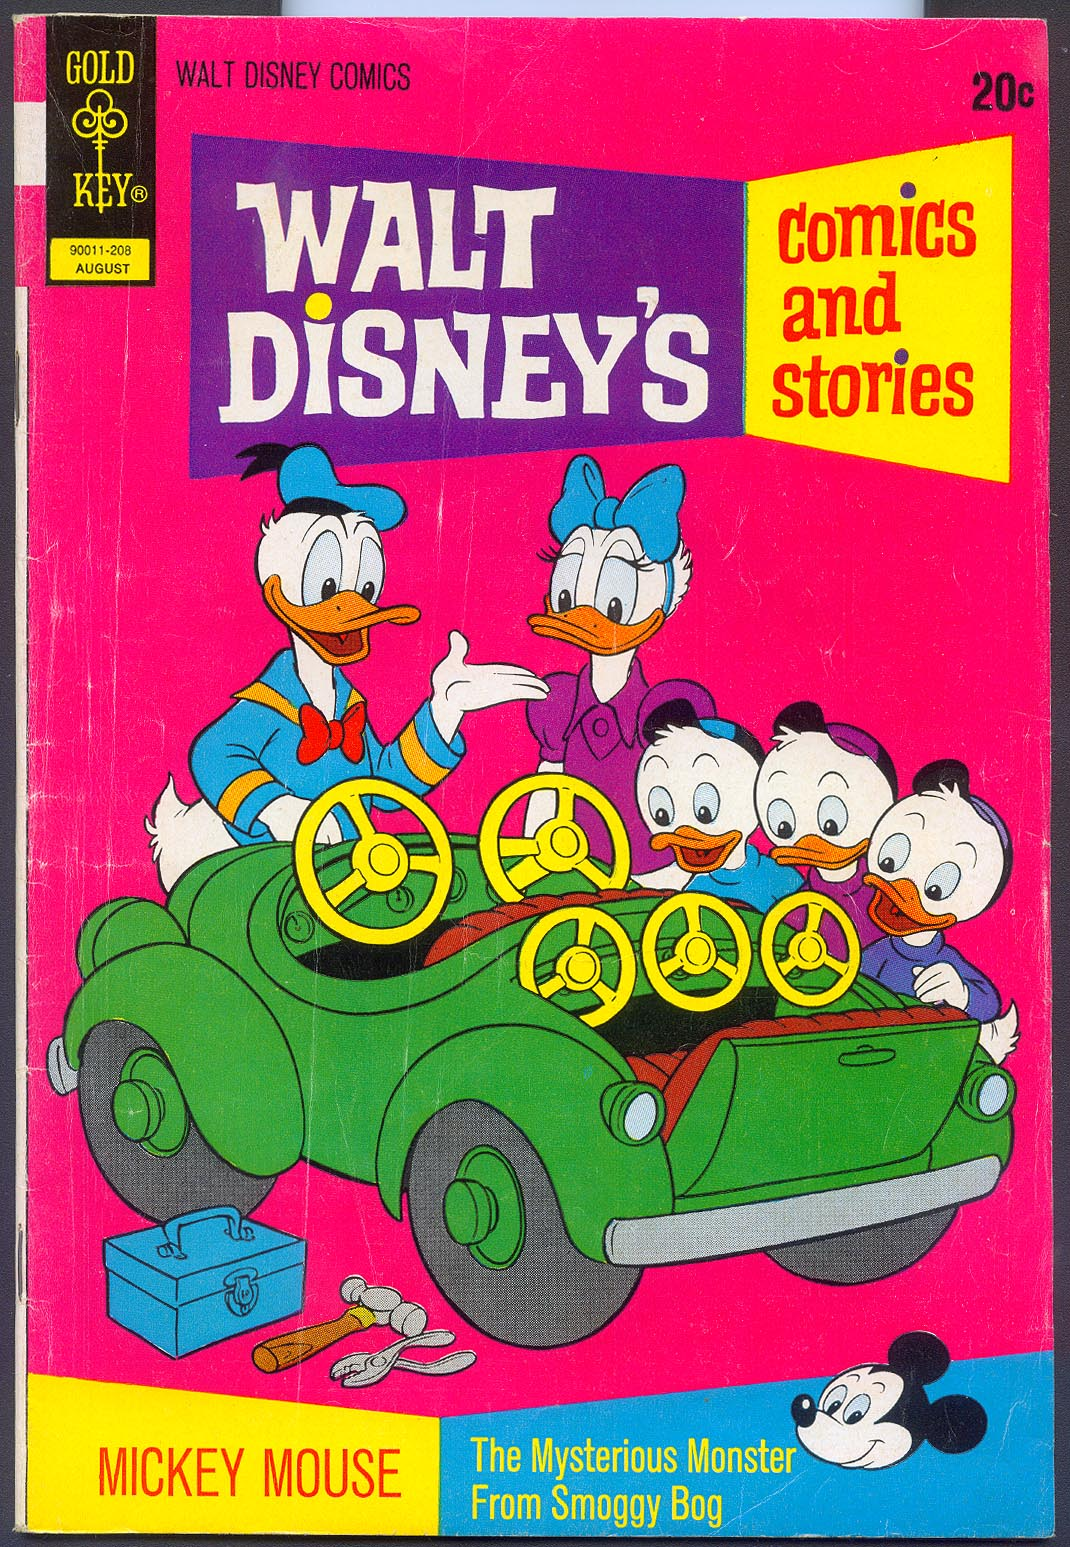 Walt Disneys Comics and Stories (Gold Key) 383 (Also Vol 32 - 11 ) -VG